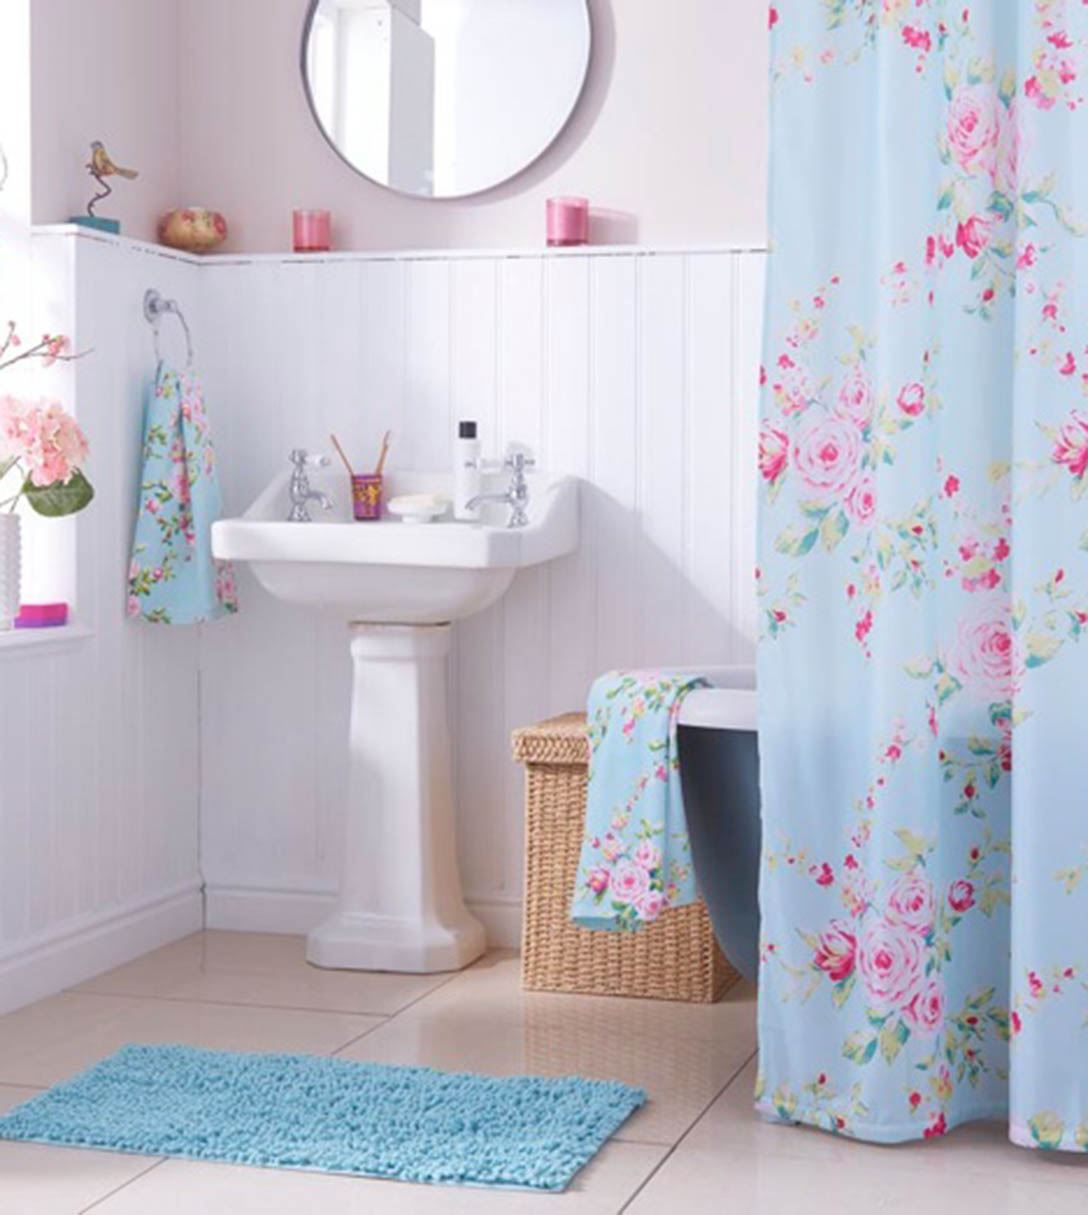 Canterbury Bath Range Towels Mat Shower Curtain Floral Blue Bathroom Accessories Ebay